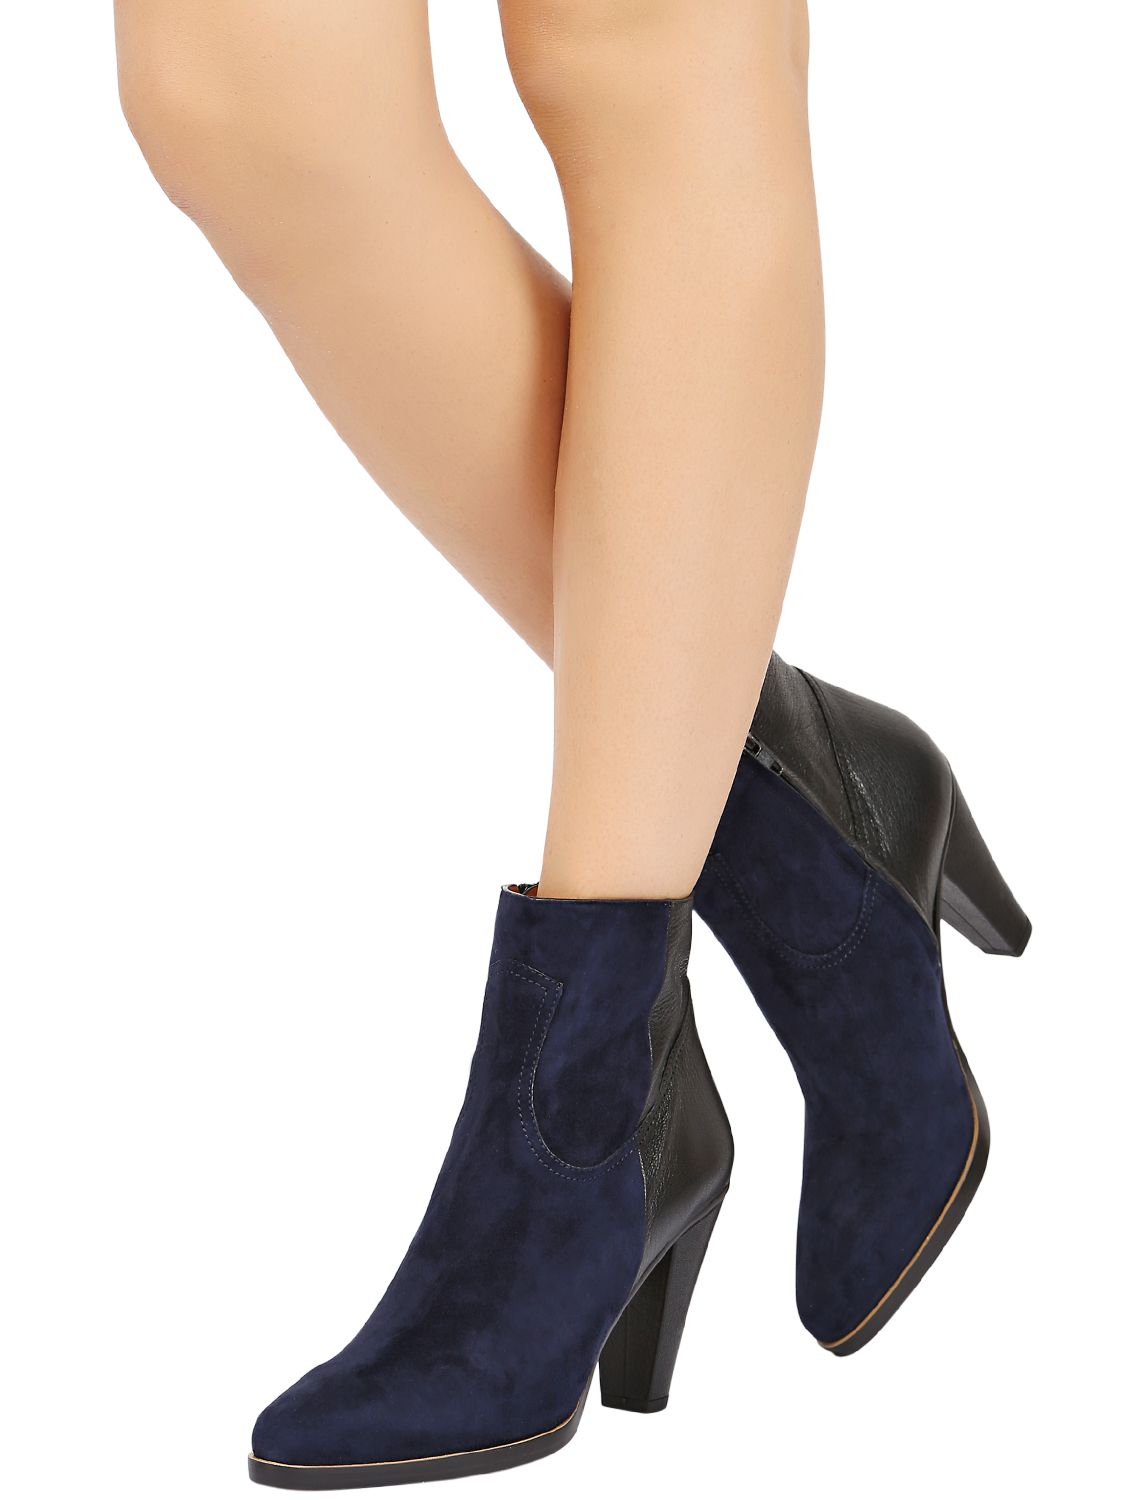 Chloé 90MM LEATHER BOOTS lJh0KFLL